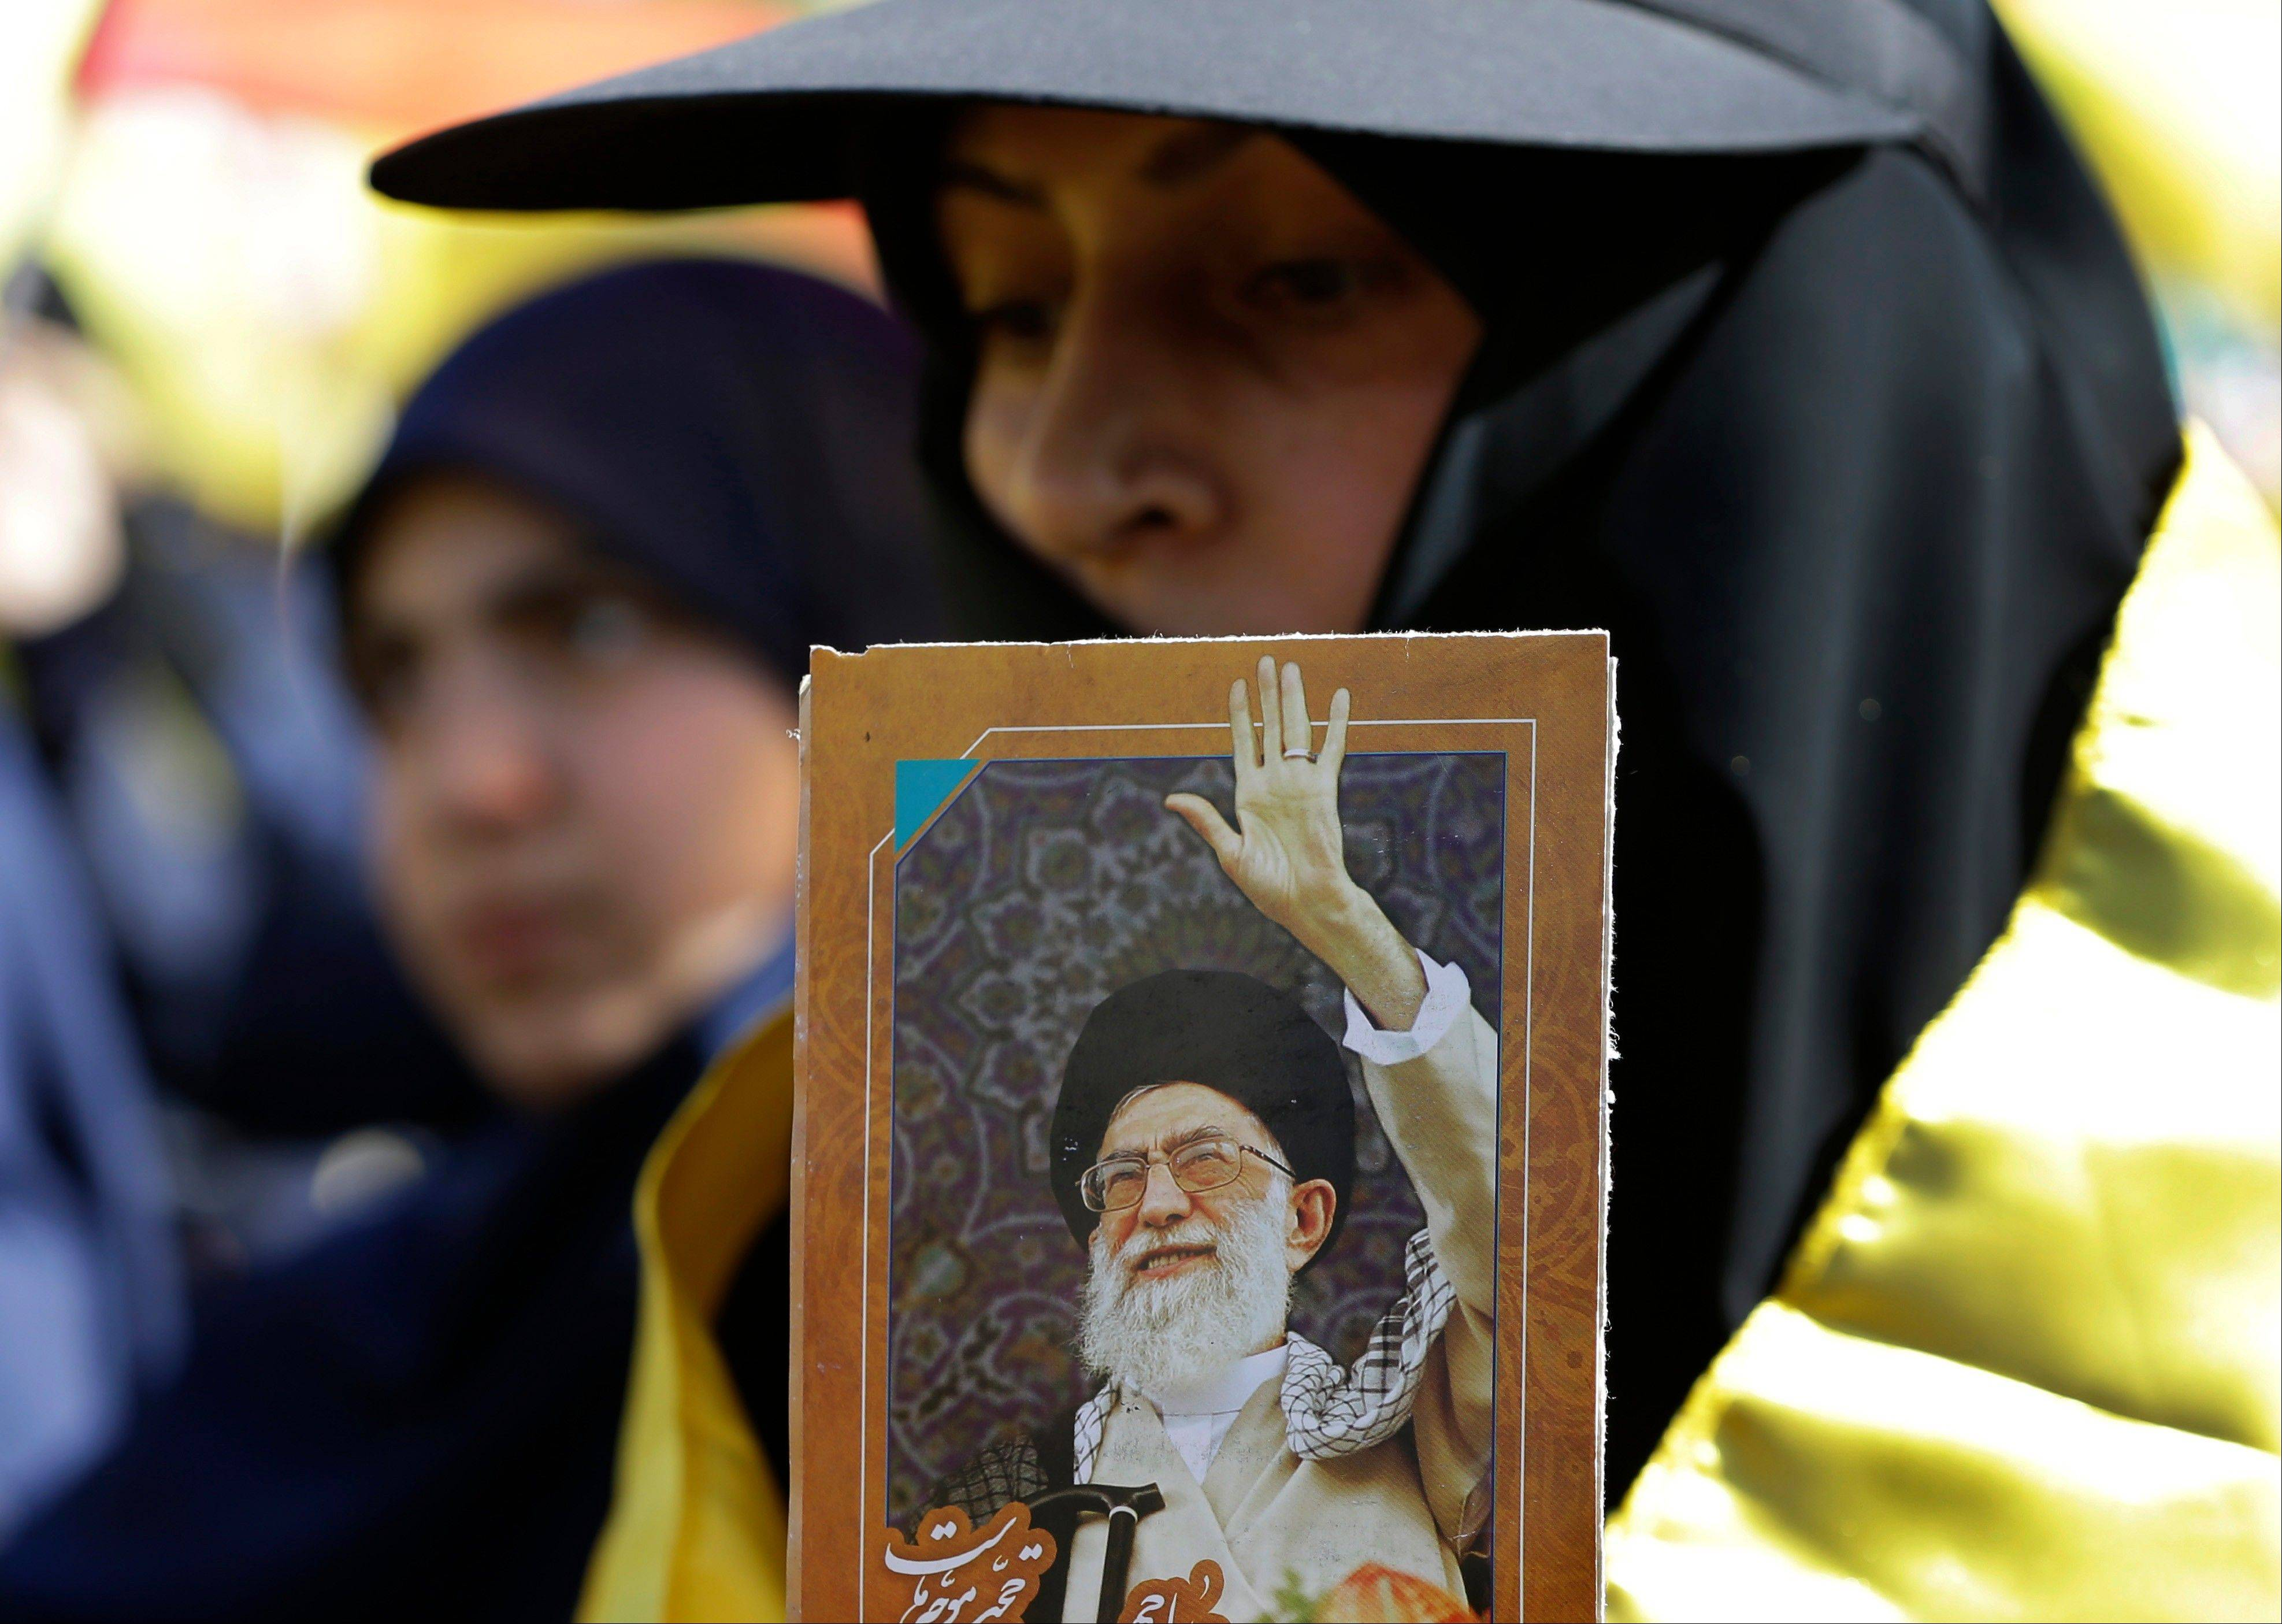 A Hezbollah supporter holds a portrait of the Iranian Supreme Leader Ayatollah Ali Khamenei, as she listens Saturday to the speech of Hezbollah leader Sheik Hassan Nasrallah, broadcast during a rally commemorating �Liberation Day,� which marks the withdrawal of the Israeli army from southern Lebanon in 2000, in Mashghara village, Bekaa valley, Lebanon.